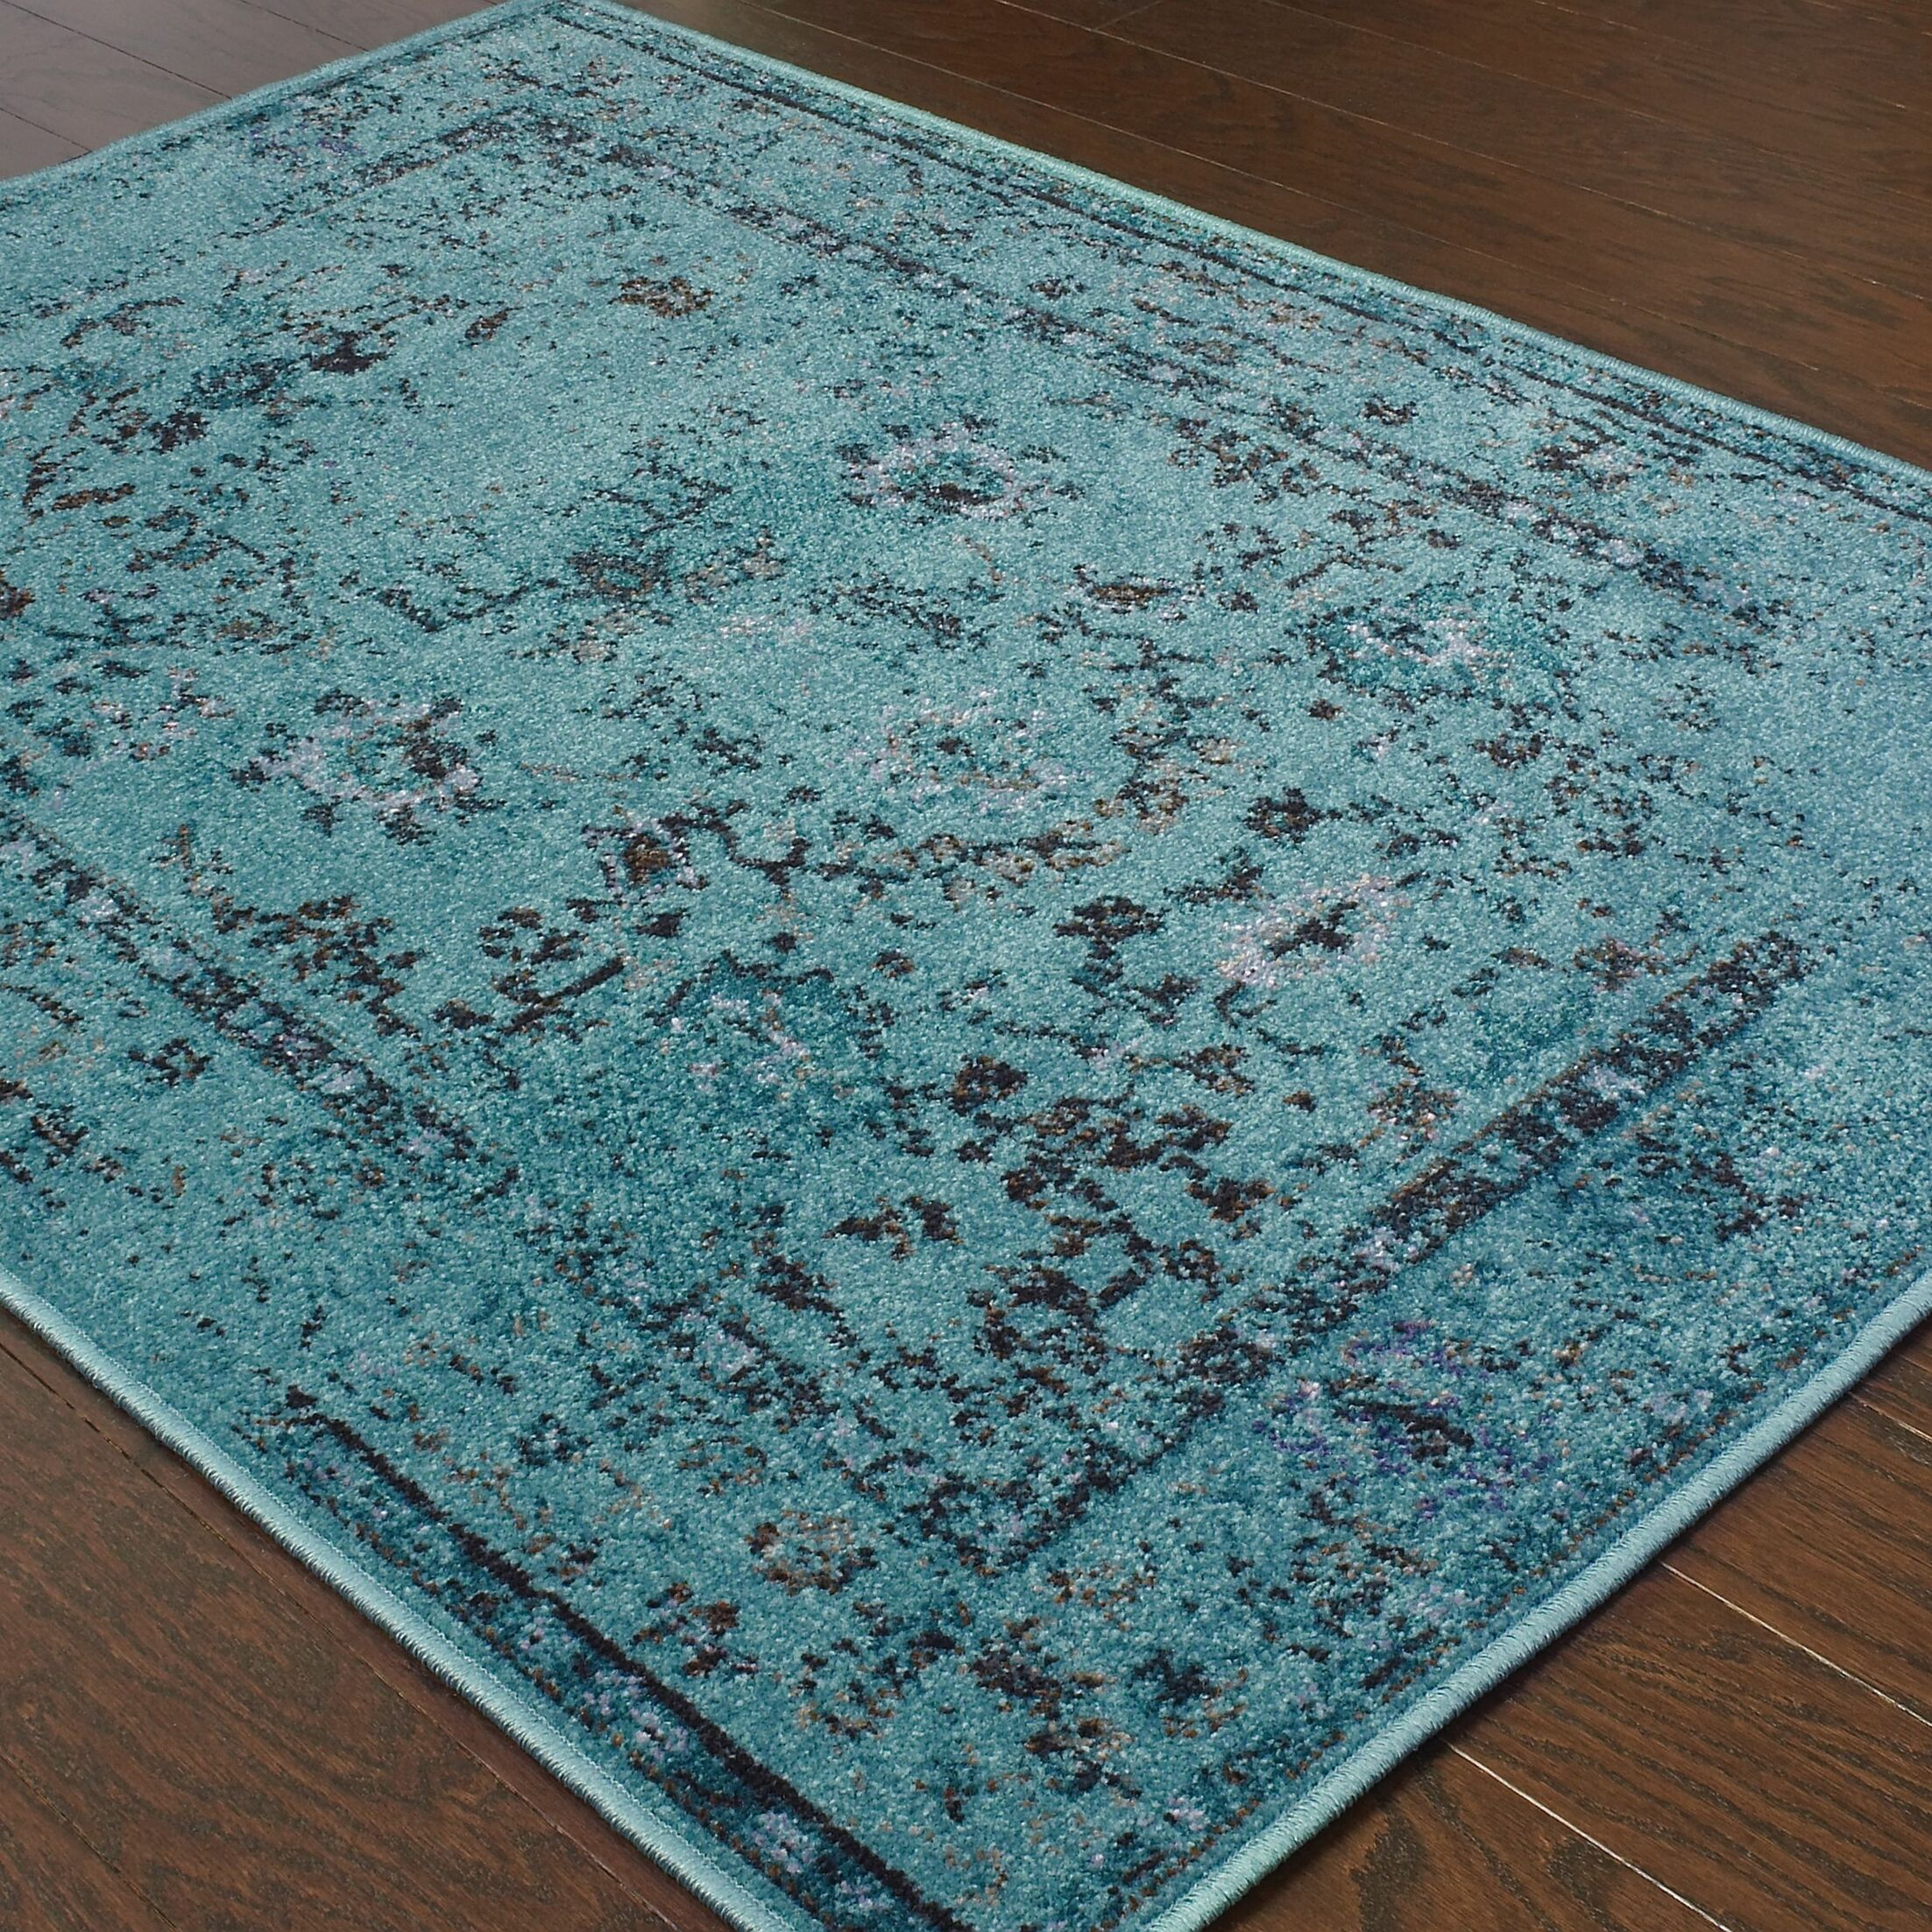 Bertina Hand Woven Teal Blue Area Rug Rug Size: Rectangle 9'10